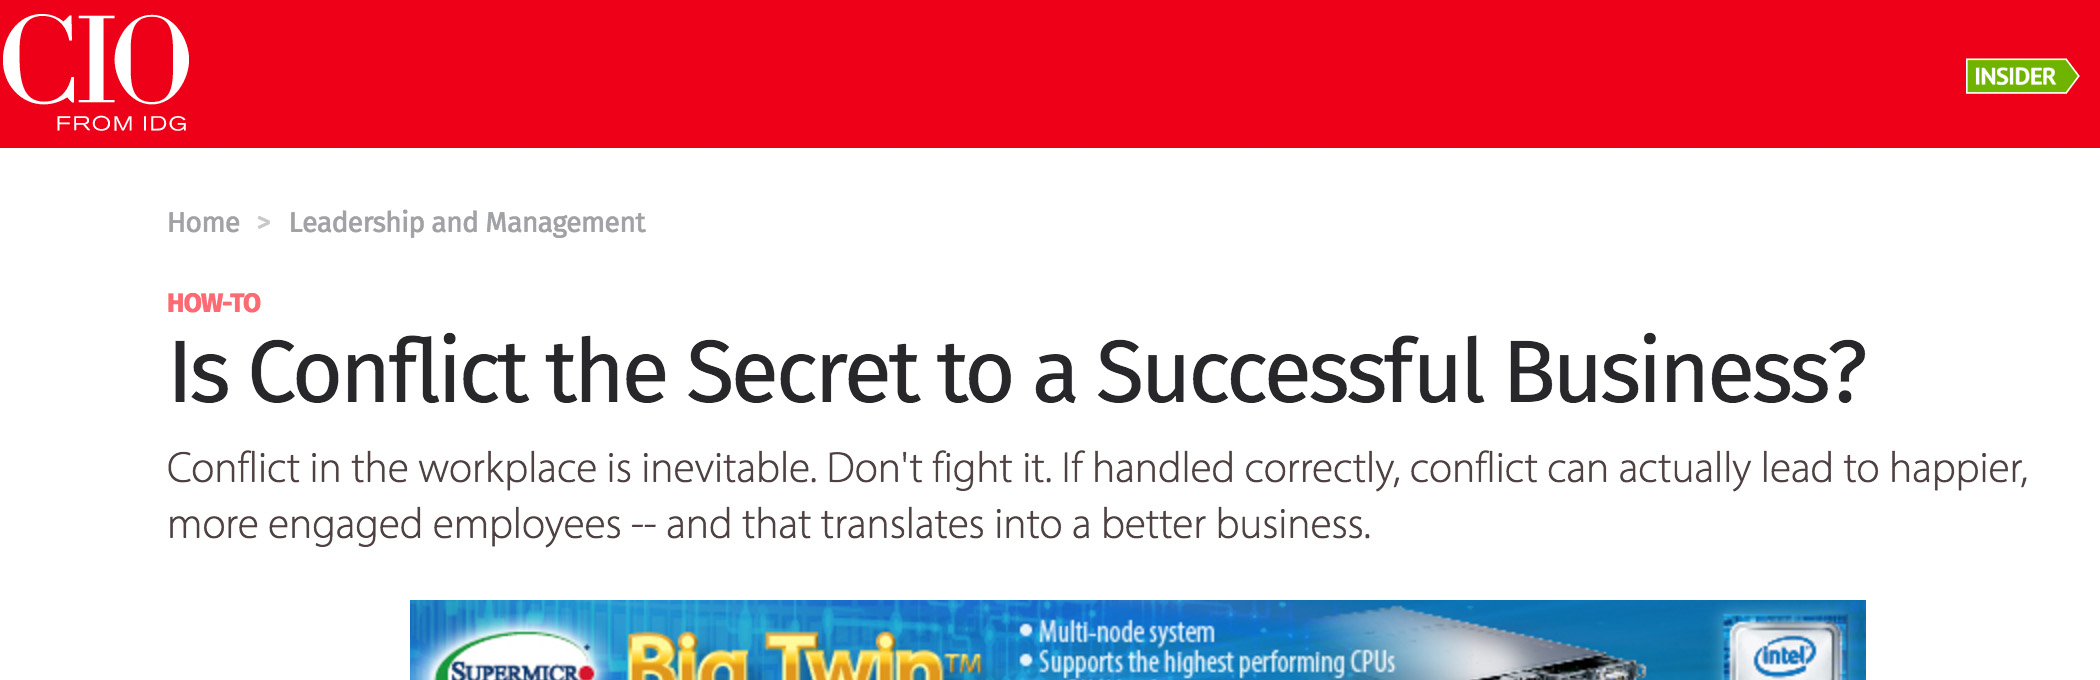 Secret to Business Success